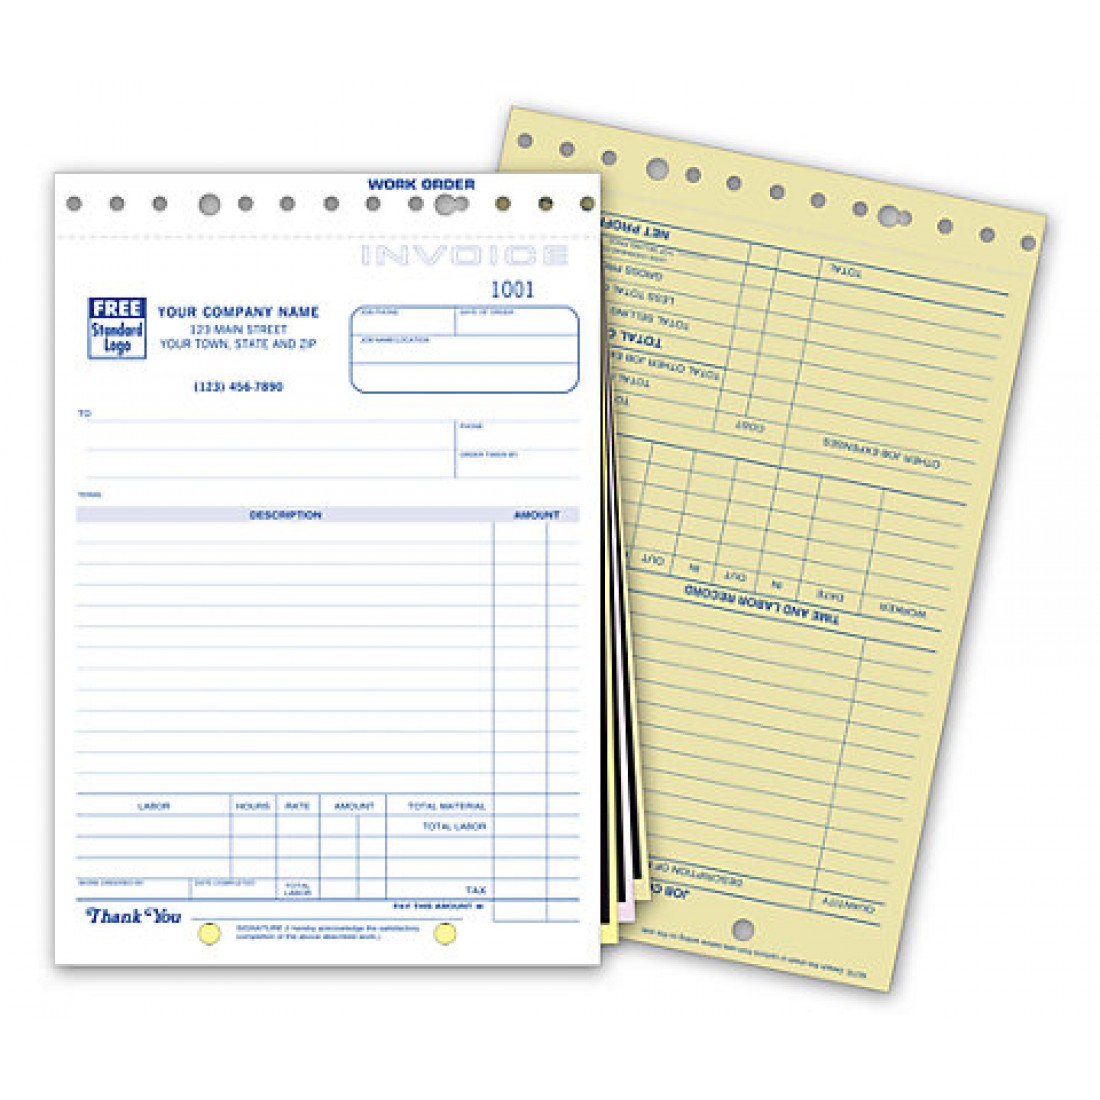 Invoice Forms Custom Business Invoice Forms Business Order Forms - Pest control invoice template free best online gun store